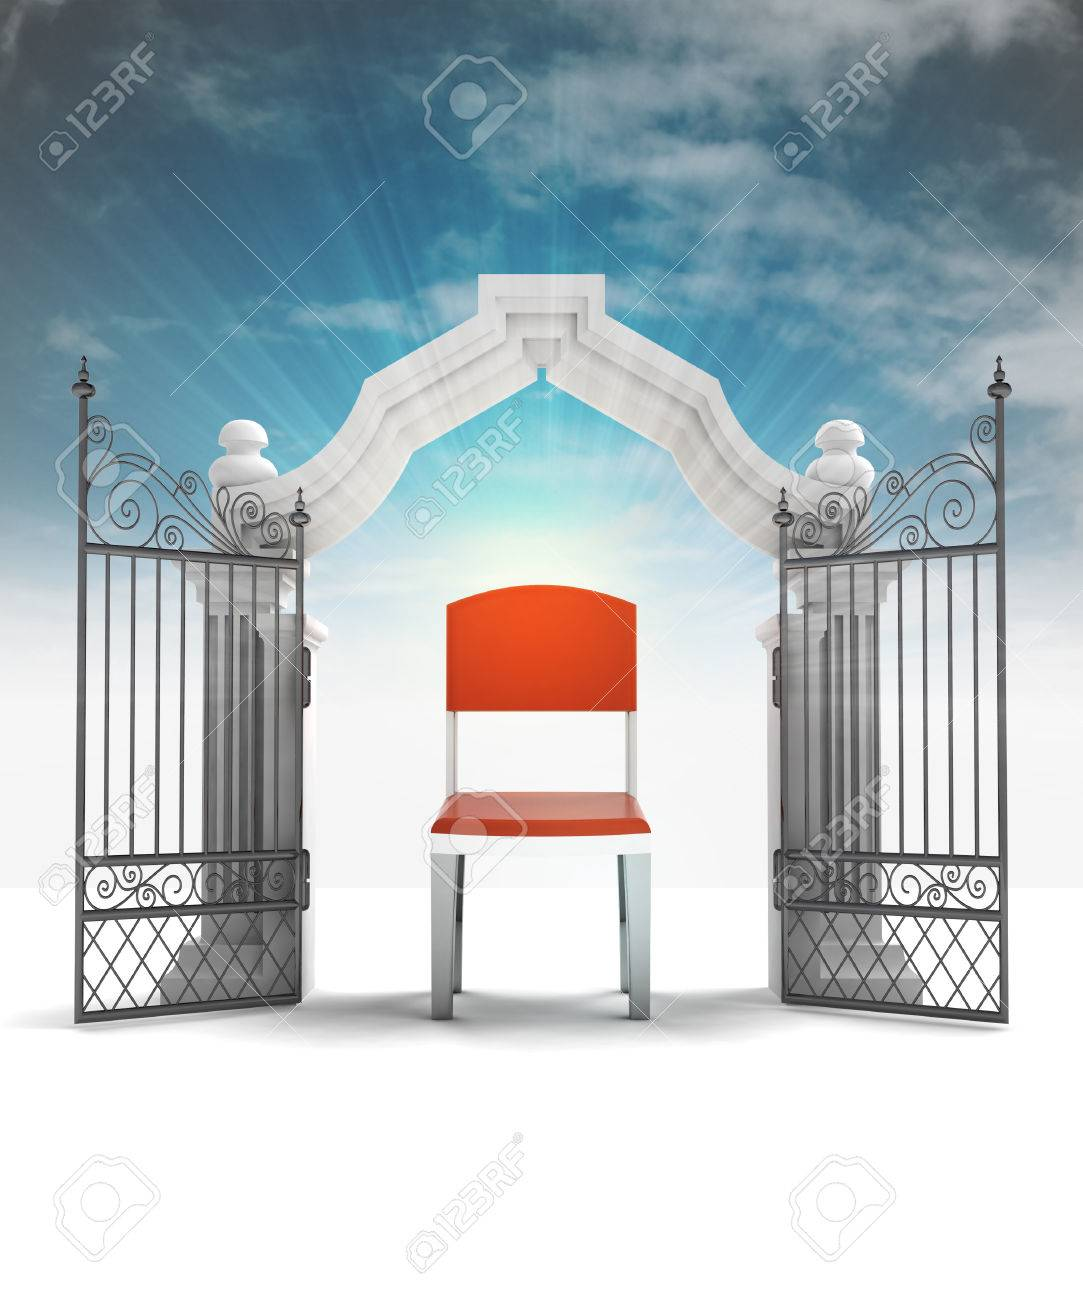 free seat on chair and  heavenly gate with sky flare illustration Stock Illustration - 22902599